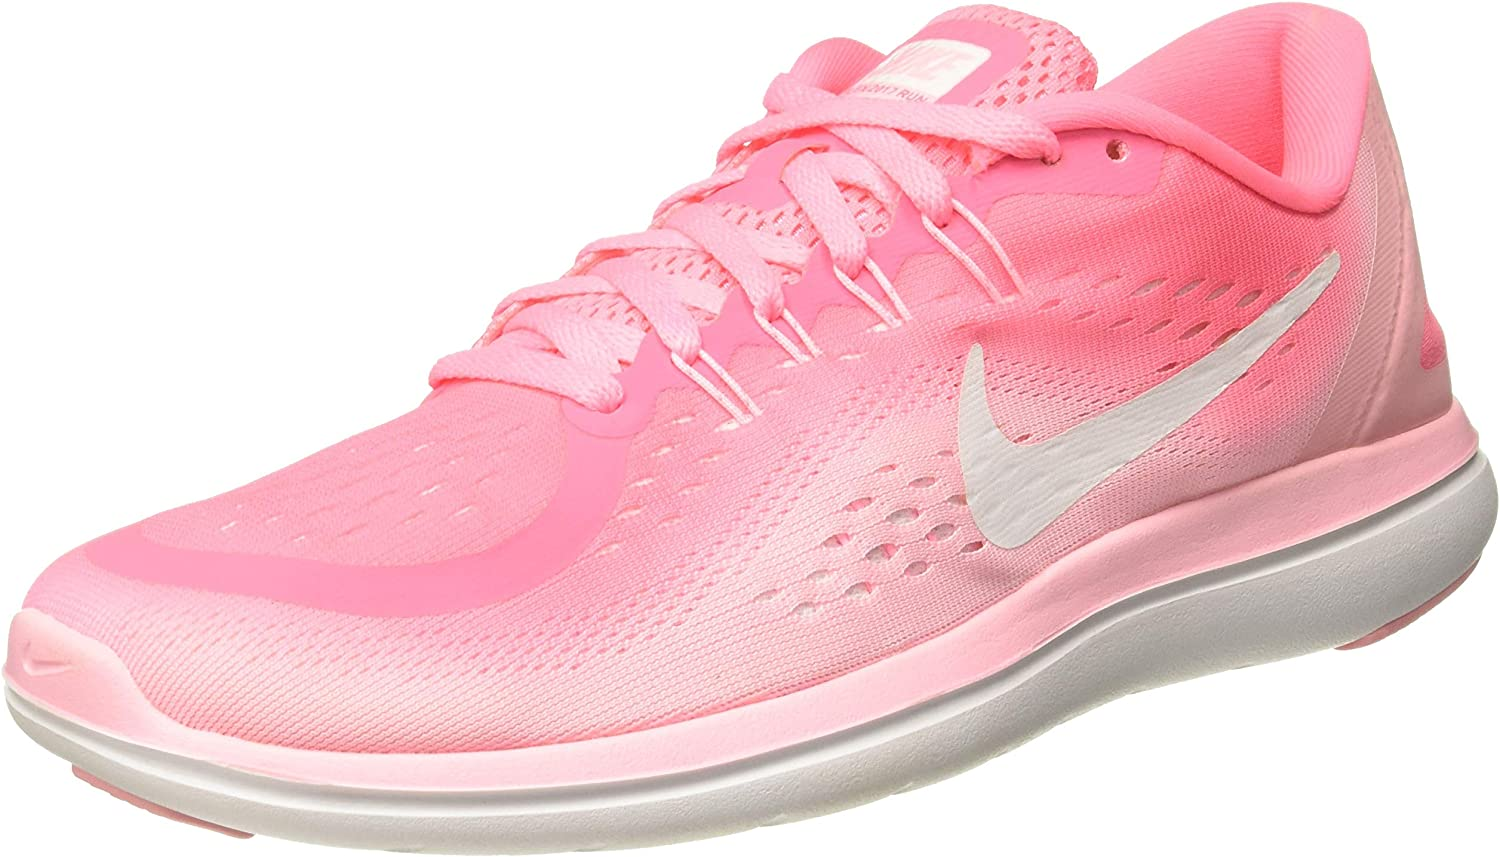 NIKE Women s Flex 2017 RN Running Shoe – Sunset Pulse